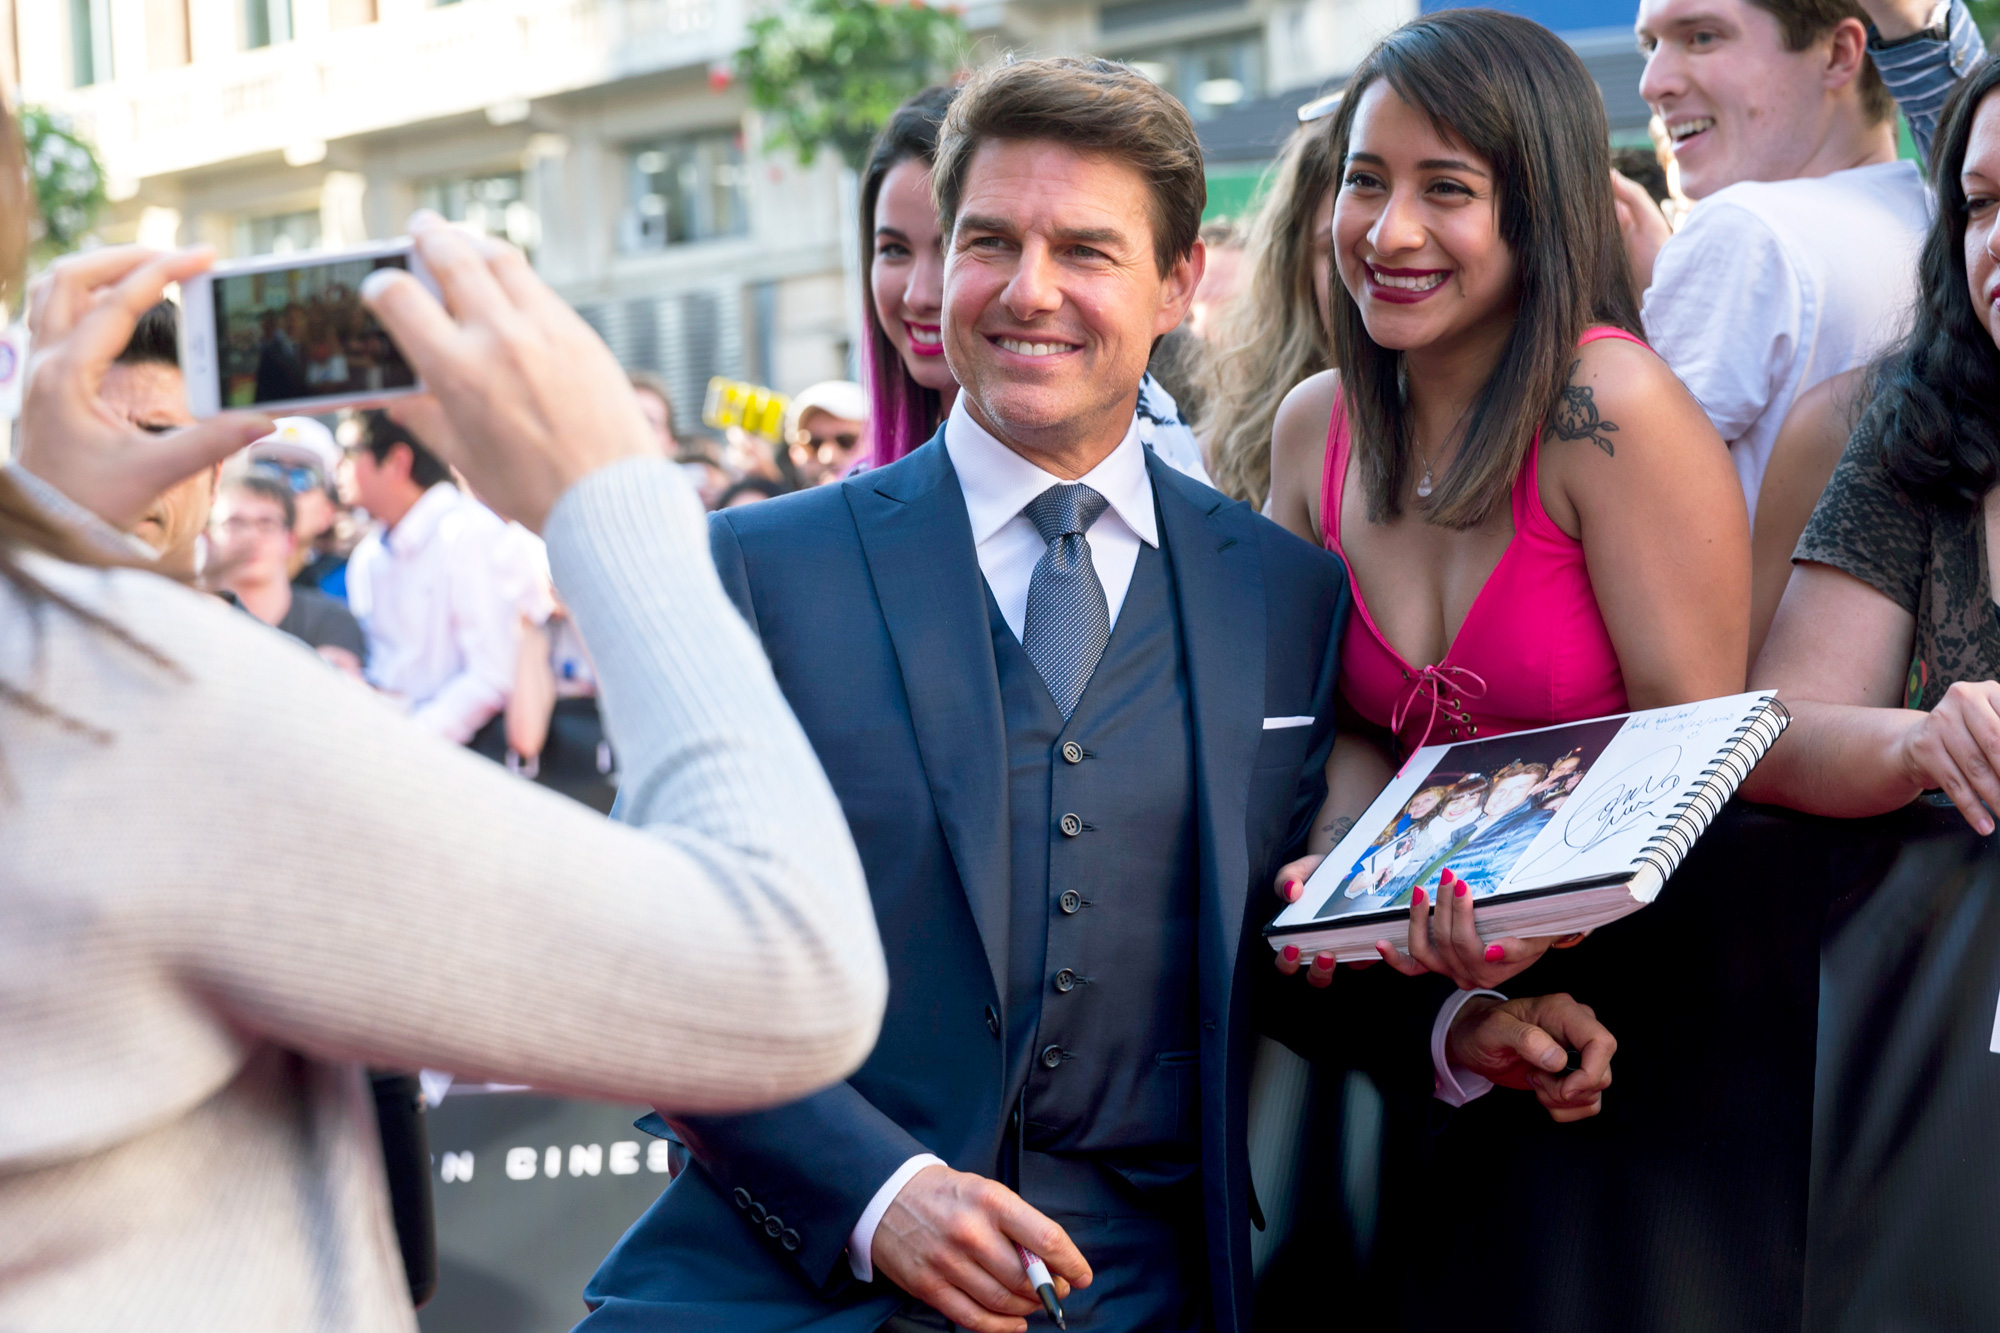 Tom Cruise attends 'The Mummy' premiere at Callao Cinema in Madrid, Spain.